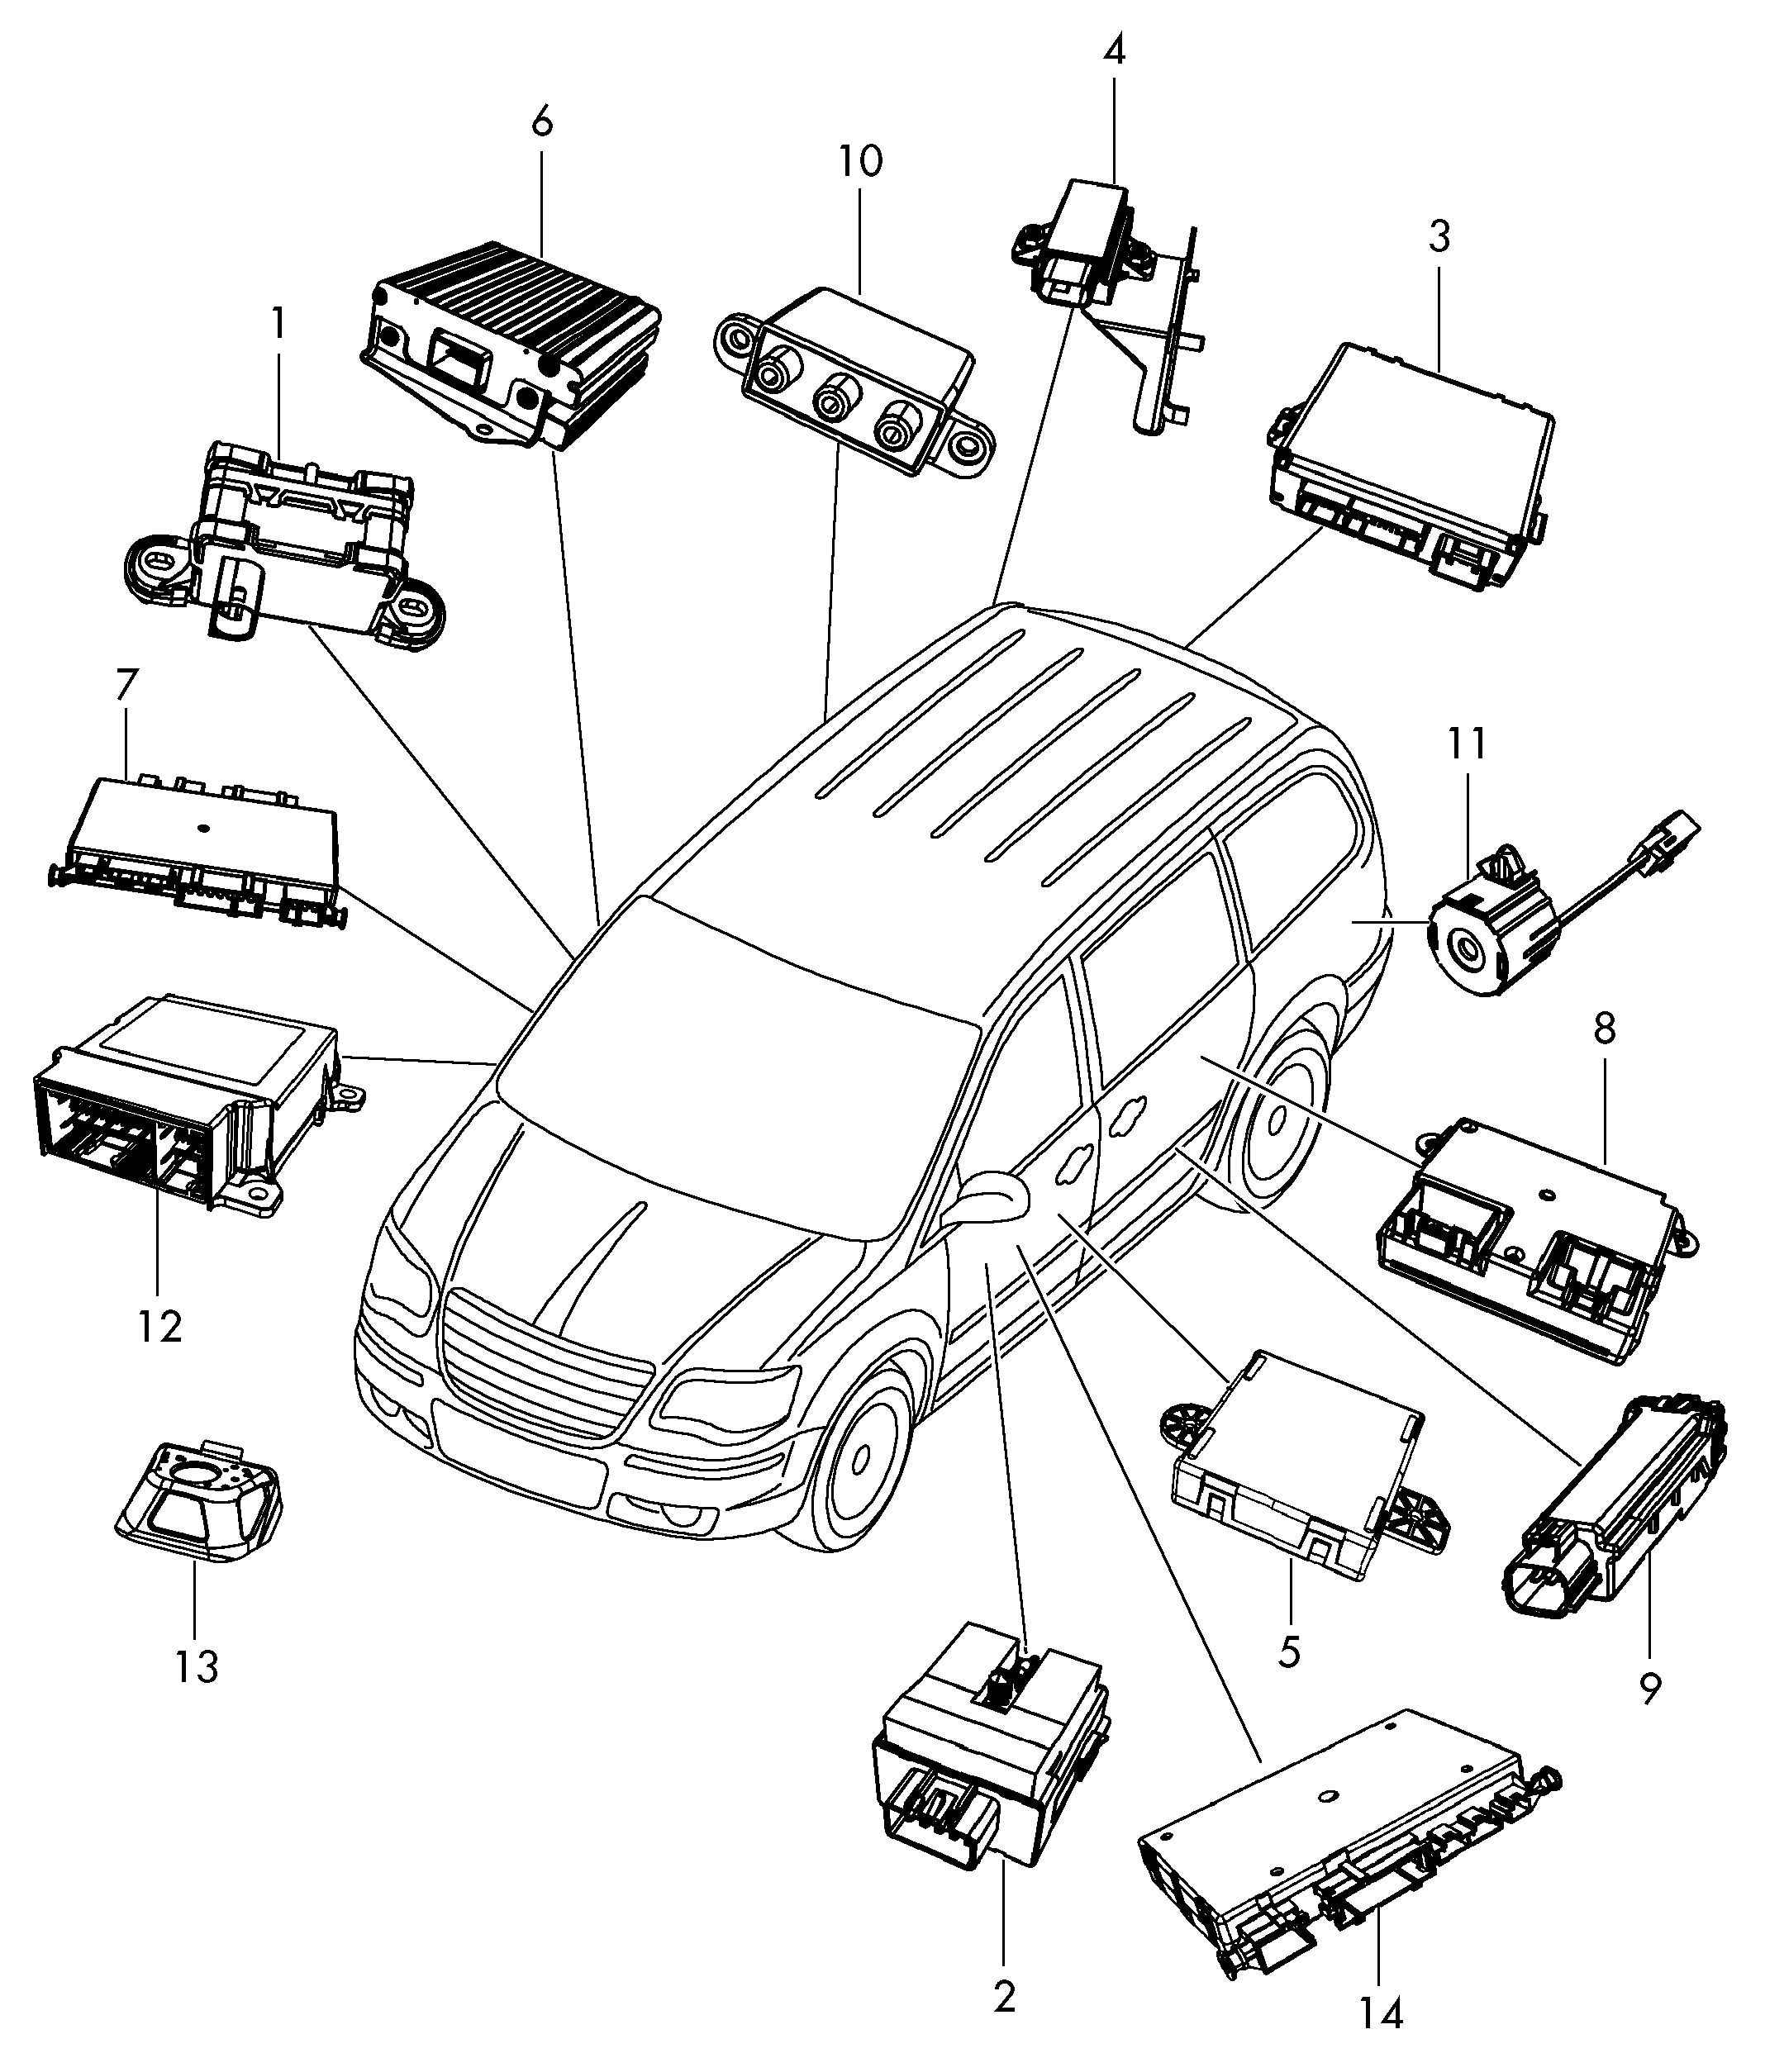 Mk4 Jetta Radio Wiring Door Diagram Rear Bumper Removal Vw Hood Sensor Engine And On